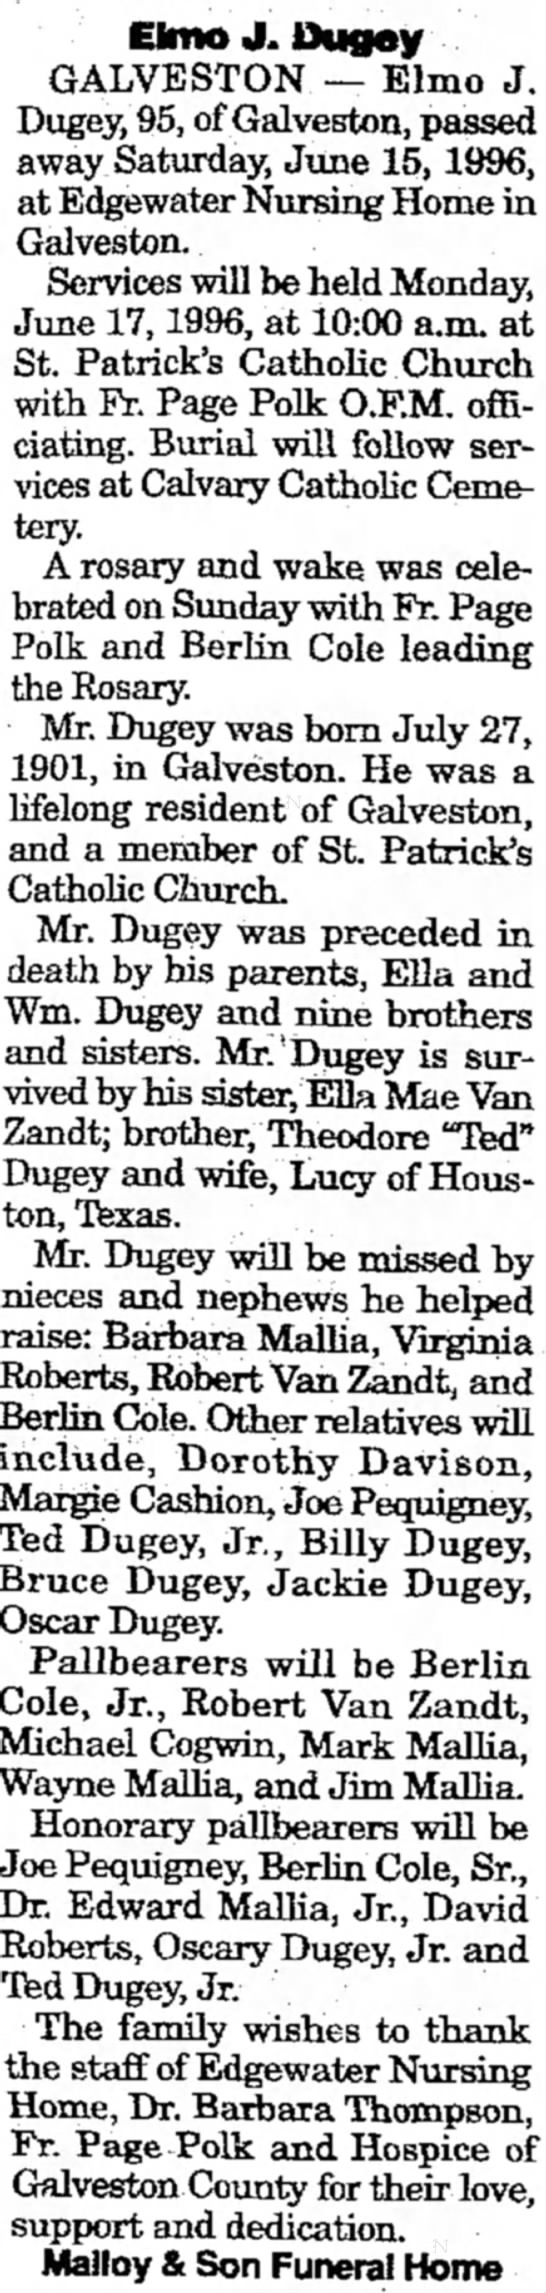 Uncle's obit. 6/17/1996 -